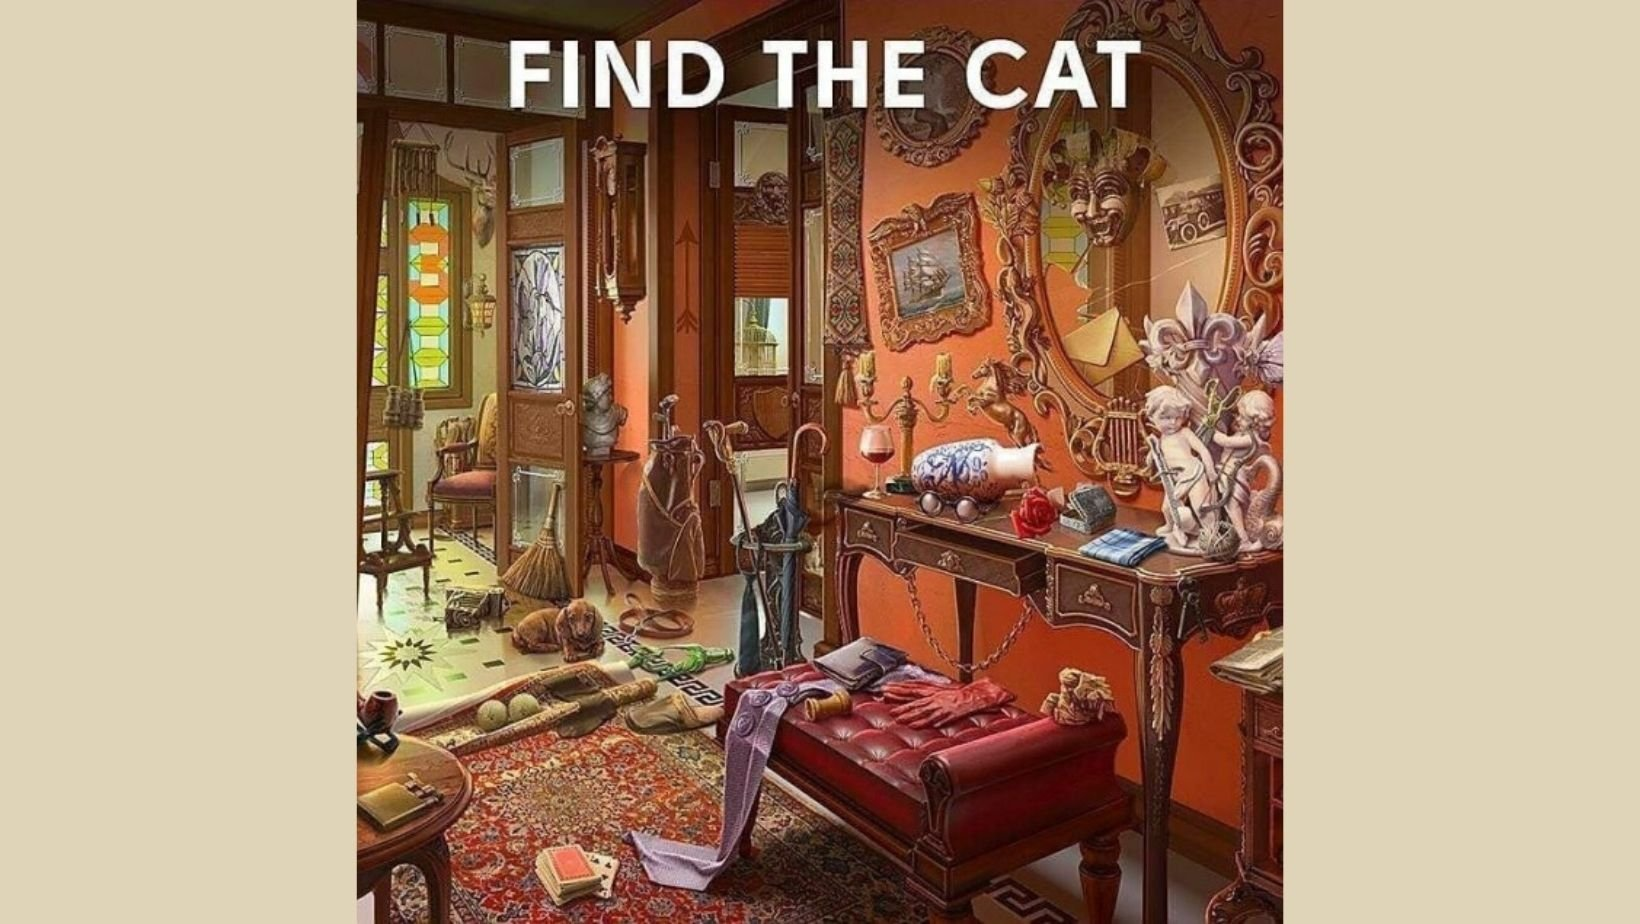 small joys thumbnail 21.jpg?resize=412,232 - There Is A Sneaky Cat Hiding In This Photo, Can You Find It?